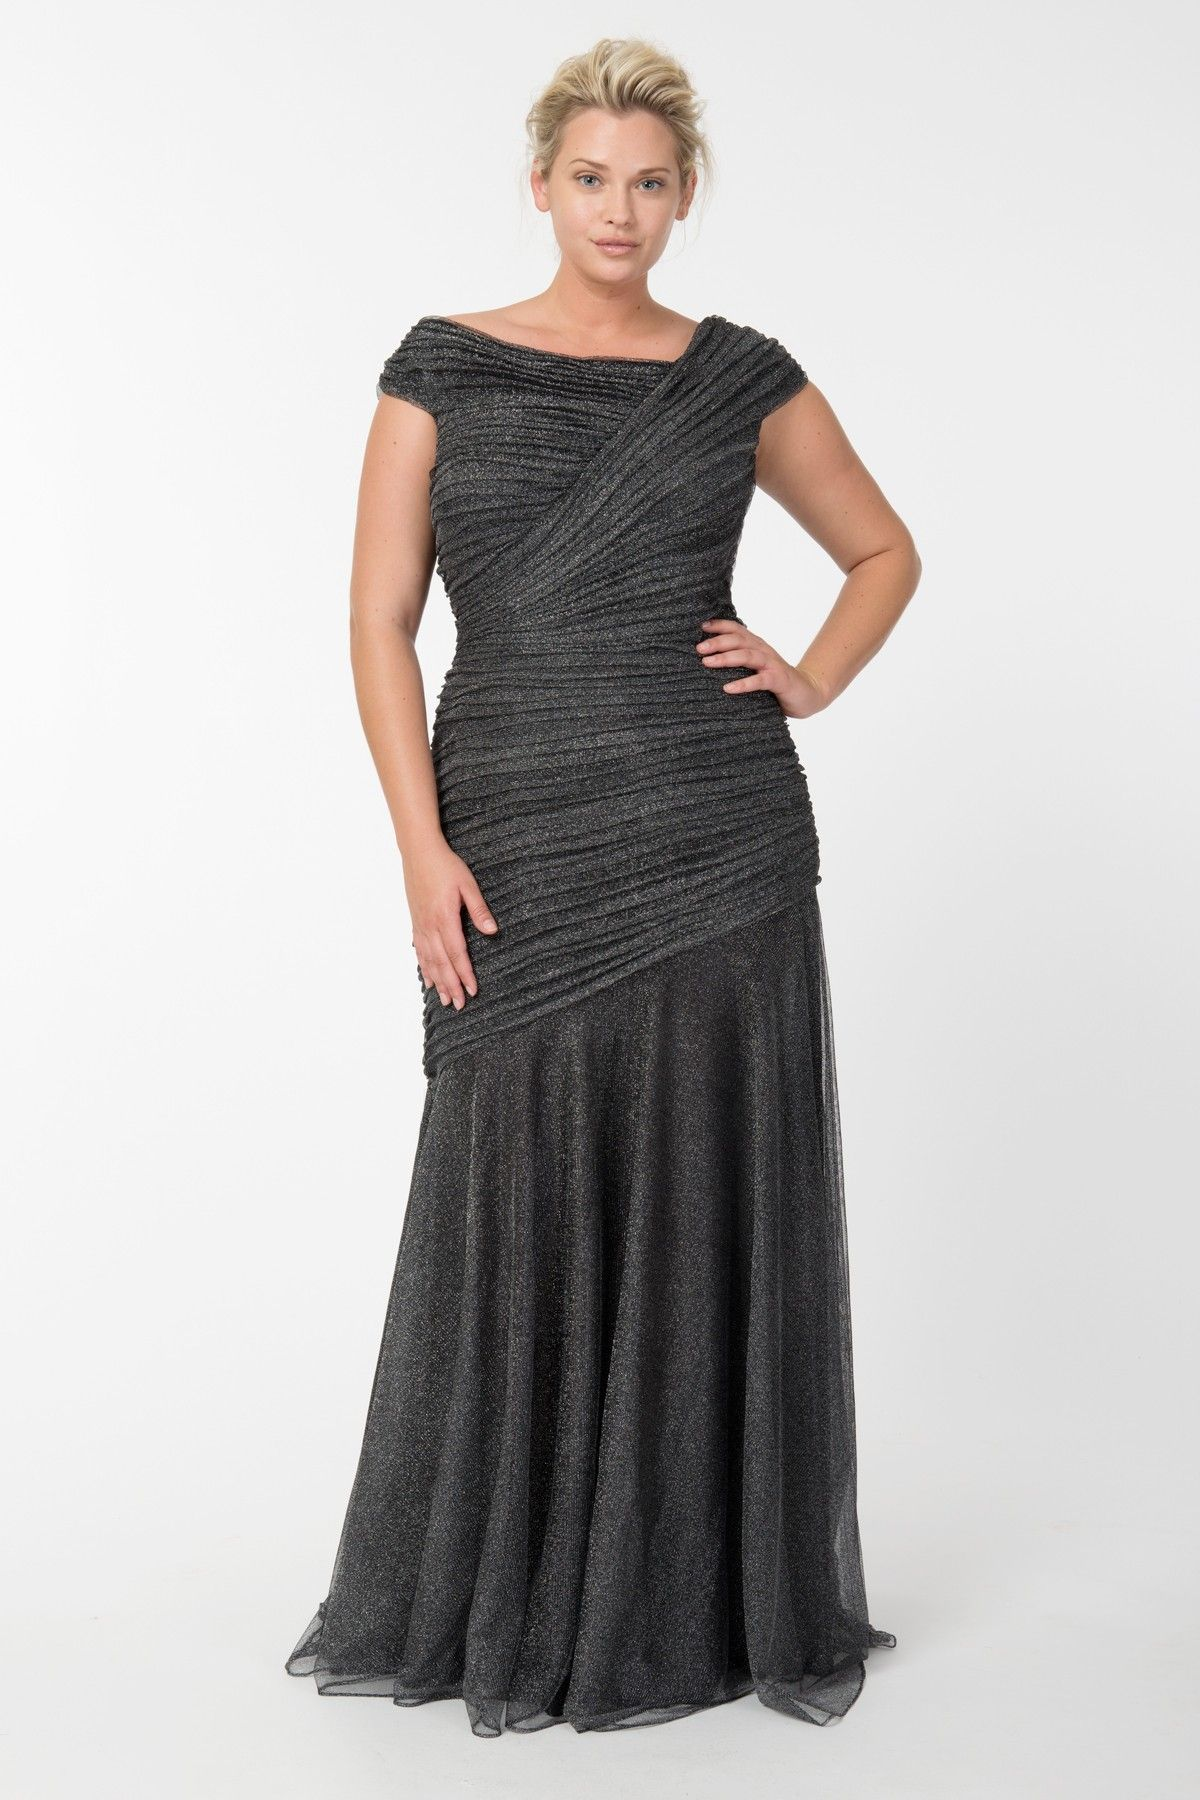 Draped Metallic Tulle Gown in Pewter - Plus Size Evening Shop ...